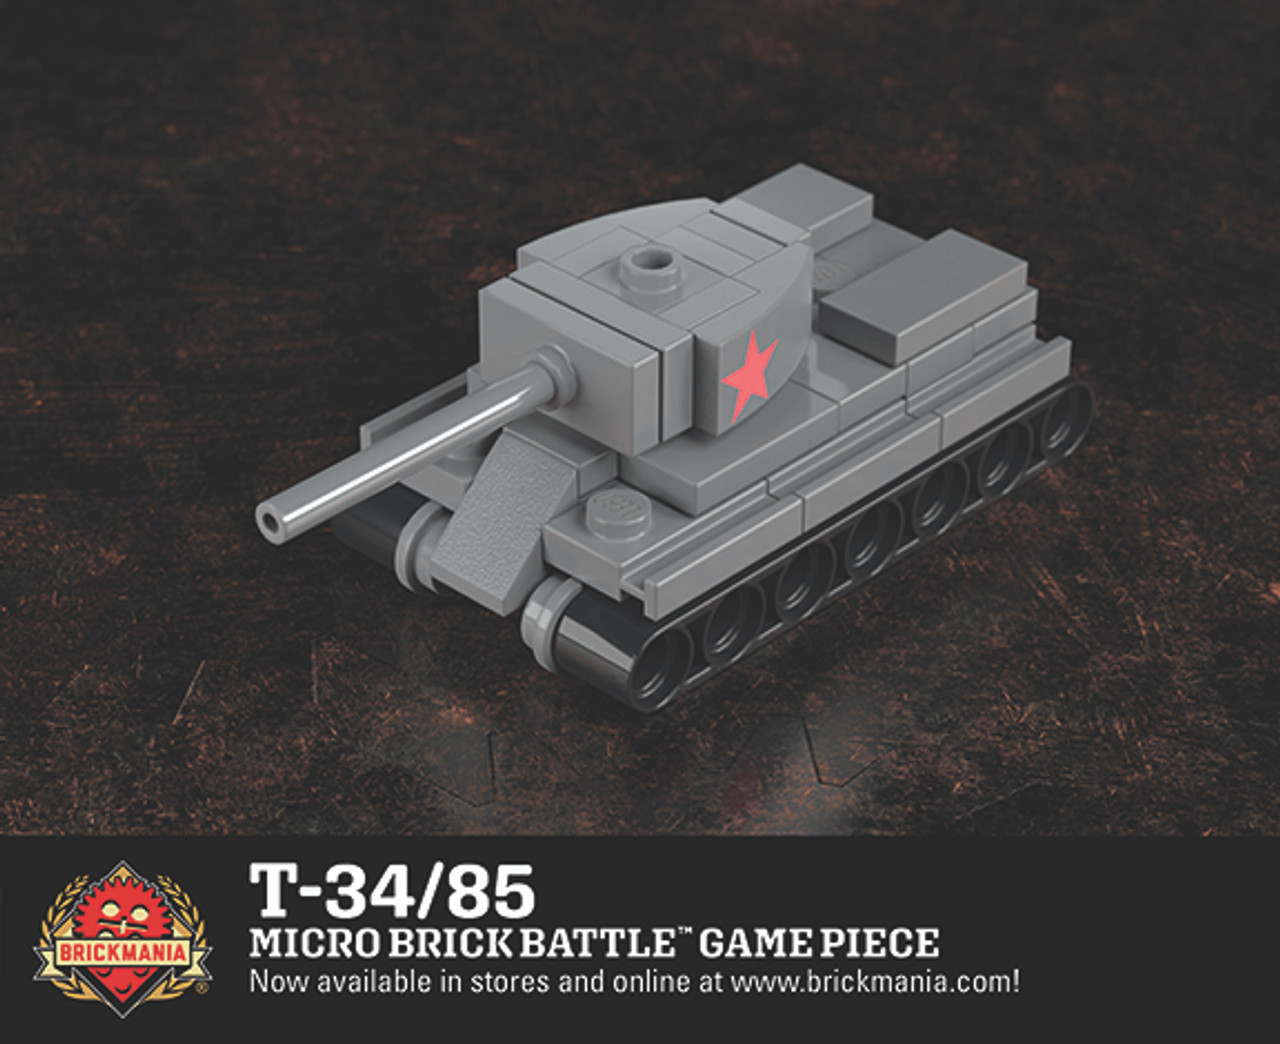 T-34/85 - Micro Brick Battle Game Piece